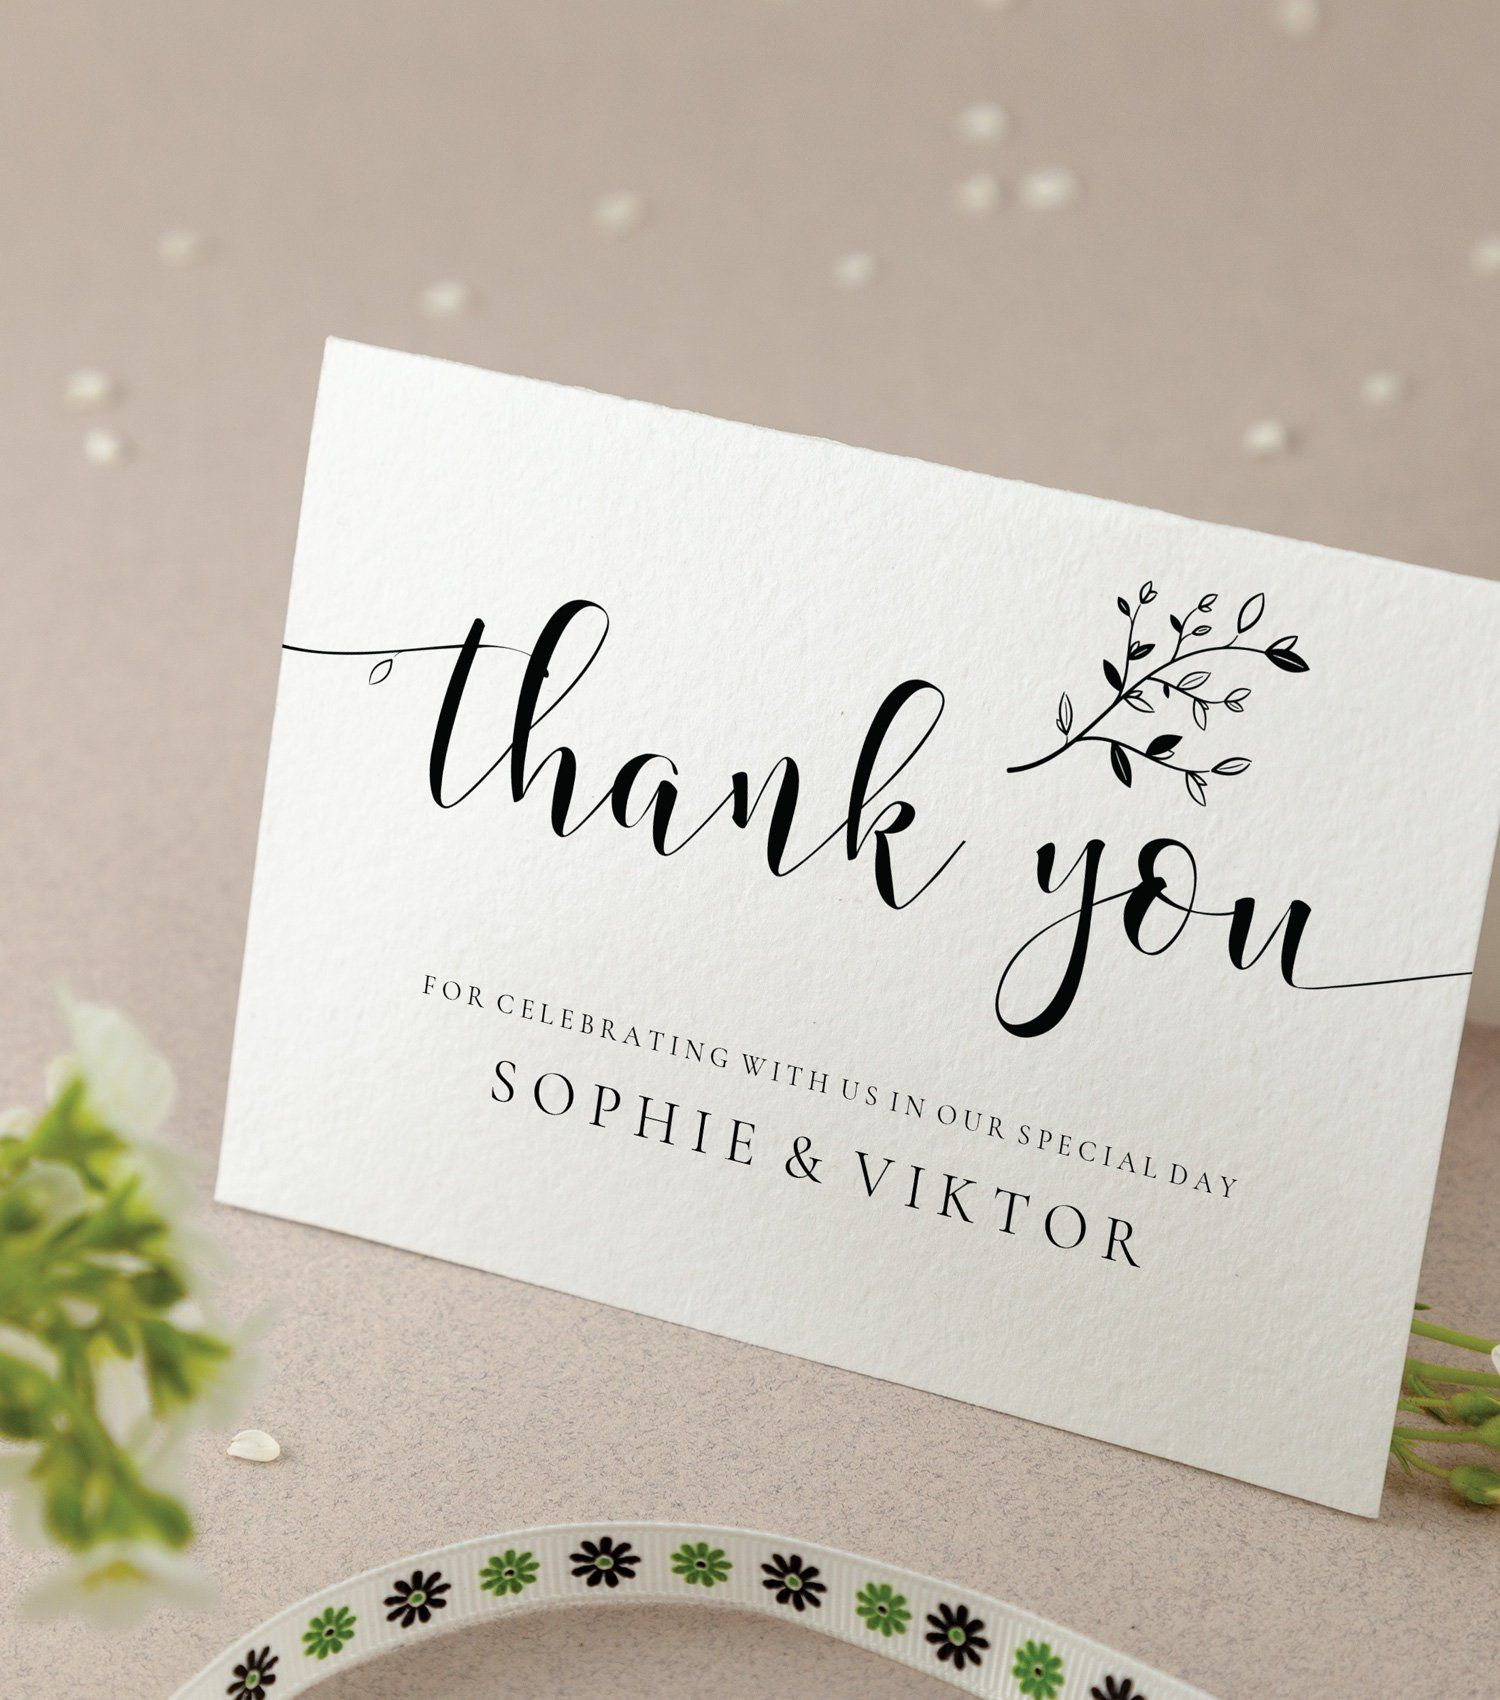 Wedding Thank You Card Template With Twigs And Leaves 5x3 5 Etsy Thank You Card Template Wedding Thank You Cards Wedding Thank You